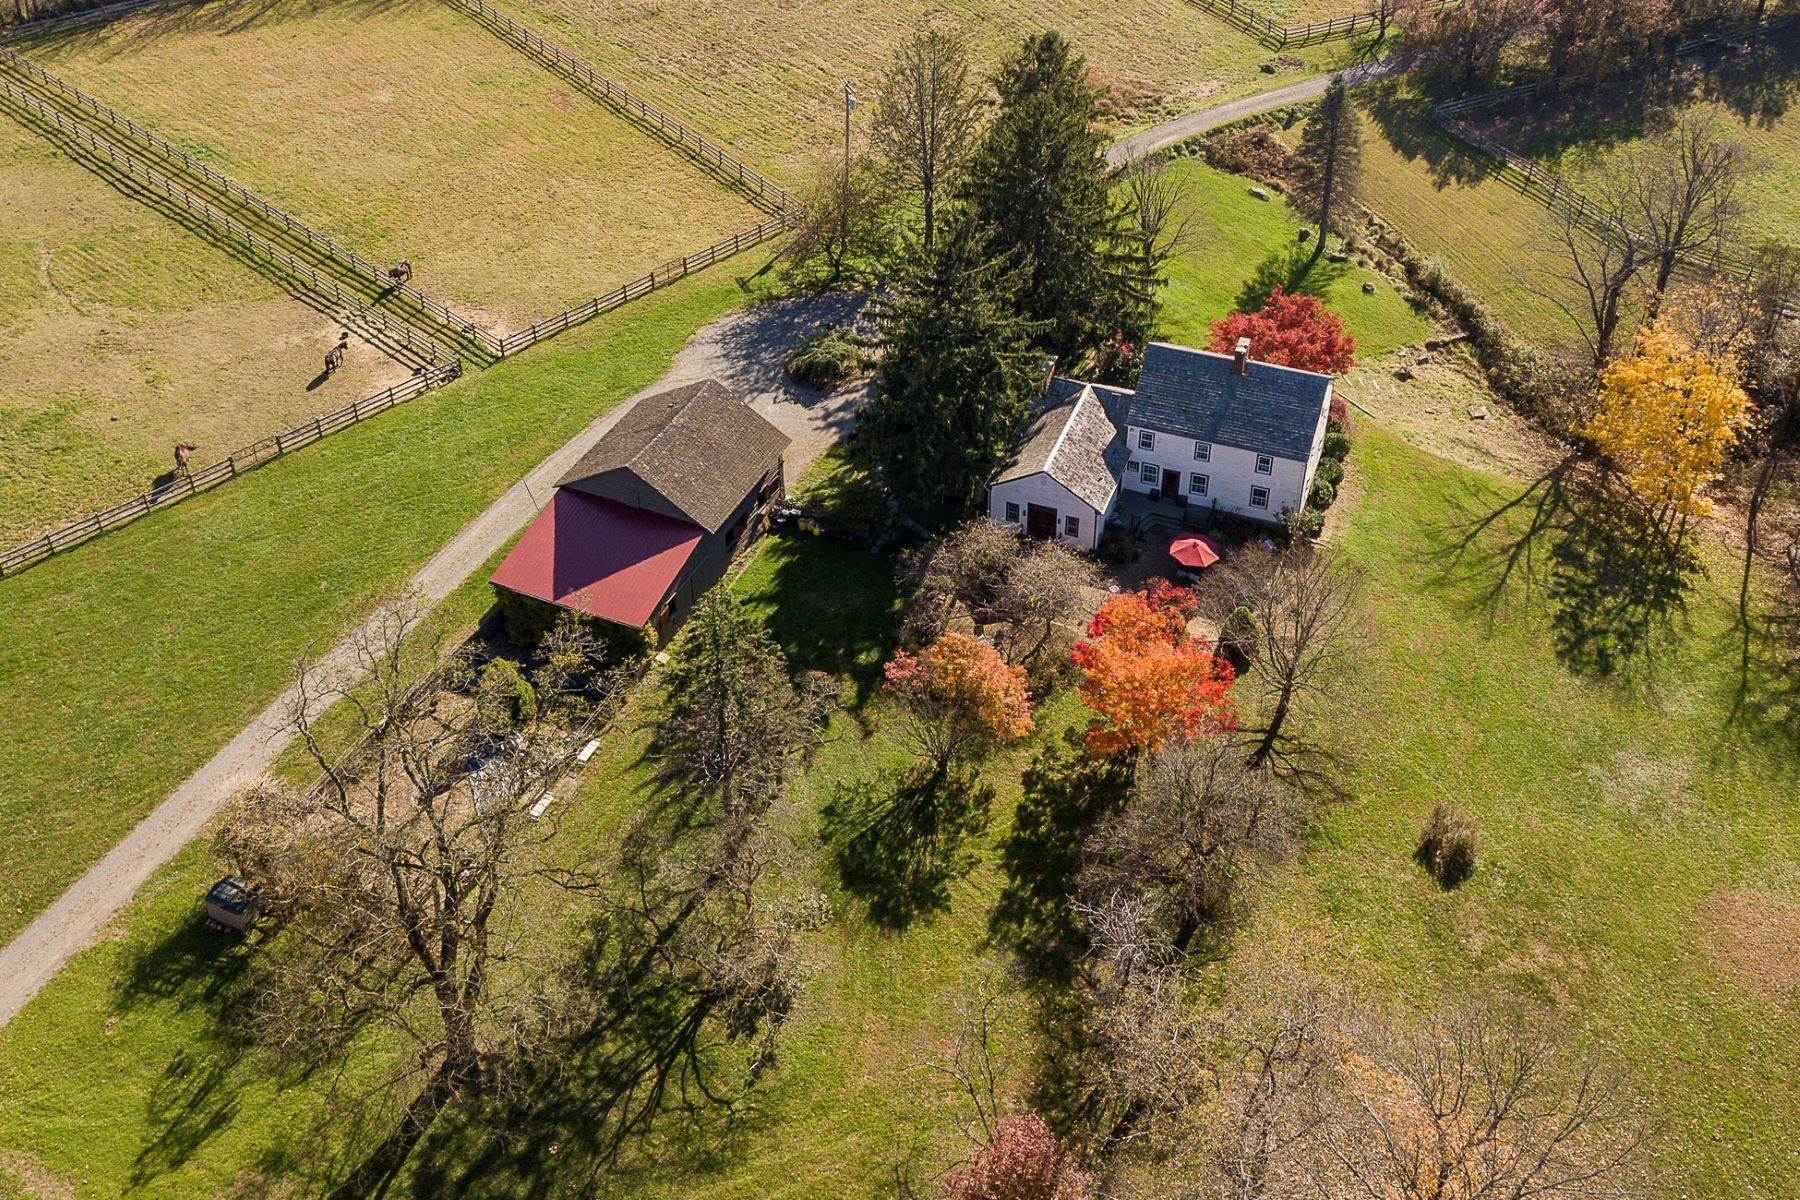 Farm and Ranch Properties for Sale at Longspring Farm: A Country Home Where Dreams Come True 172 Pleasant Valley Road, Titusville, New Jersey 08560 United States